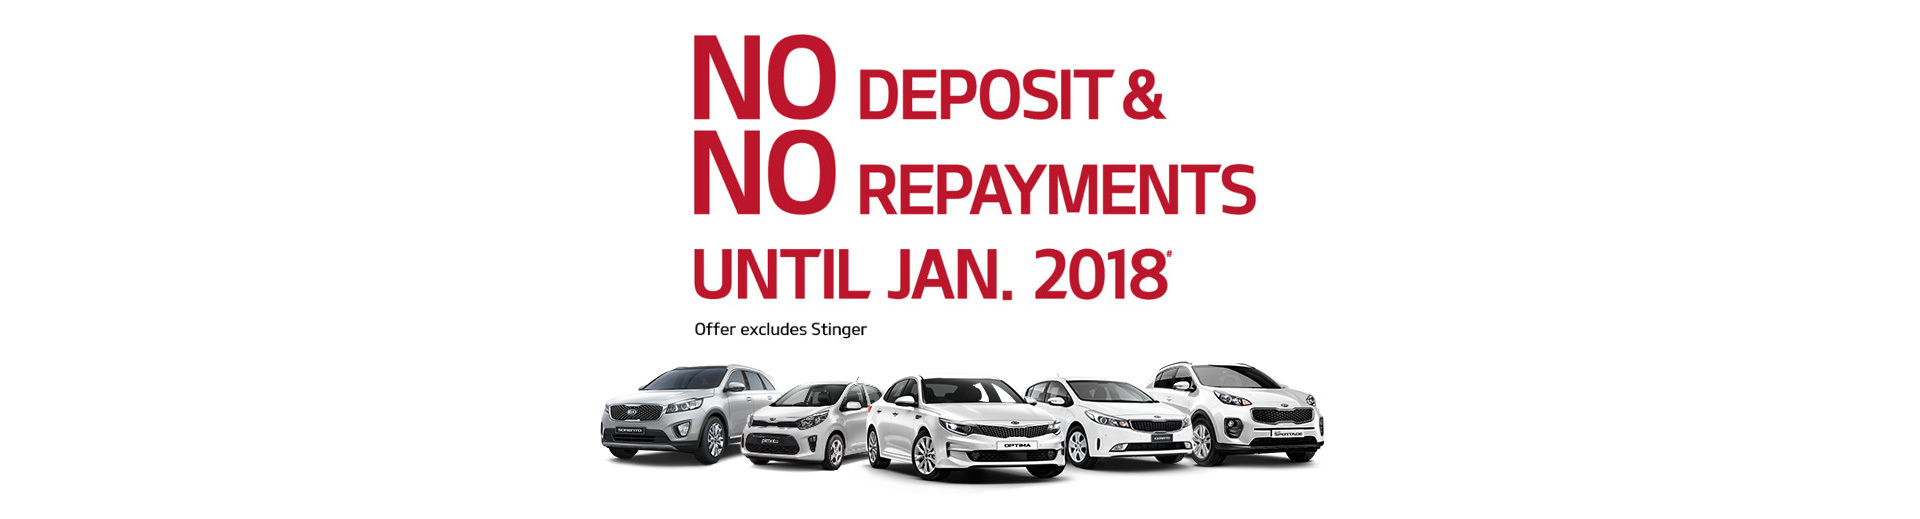 Kia - National Offer - No Deposit & No Repayments until January 2018*